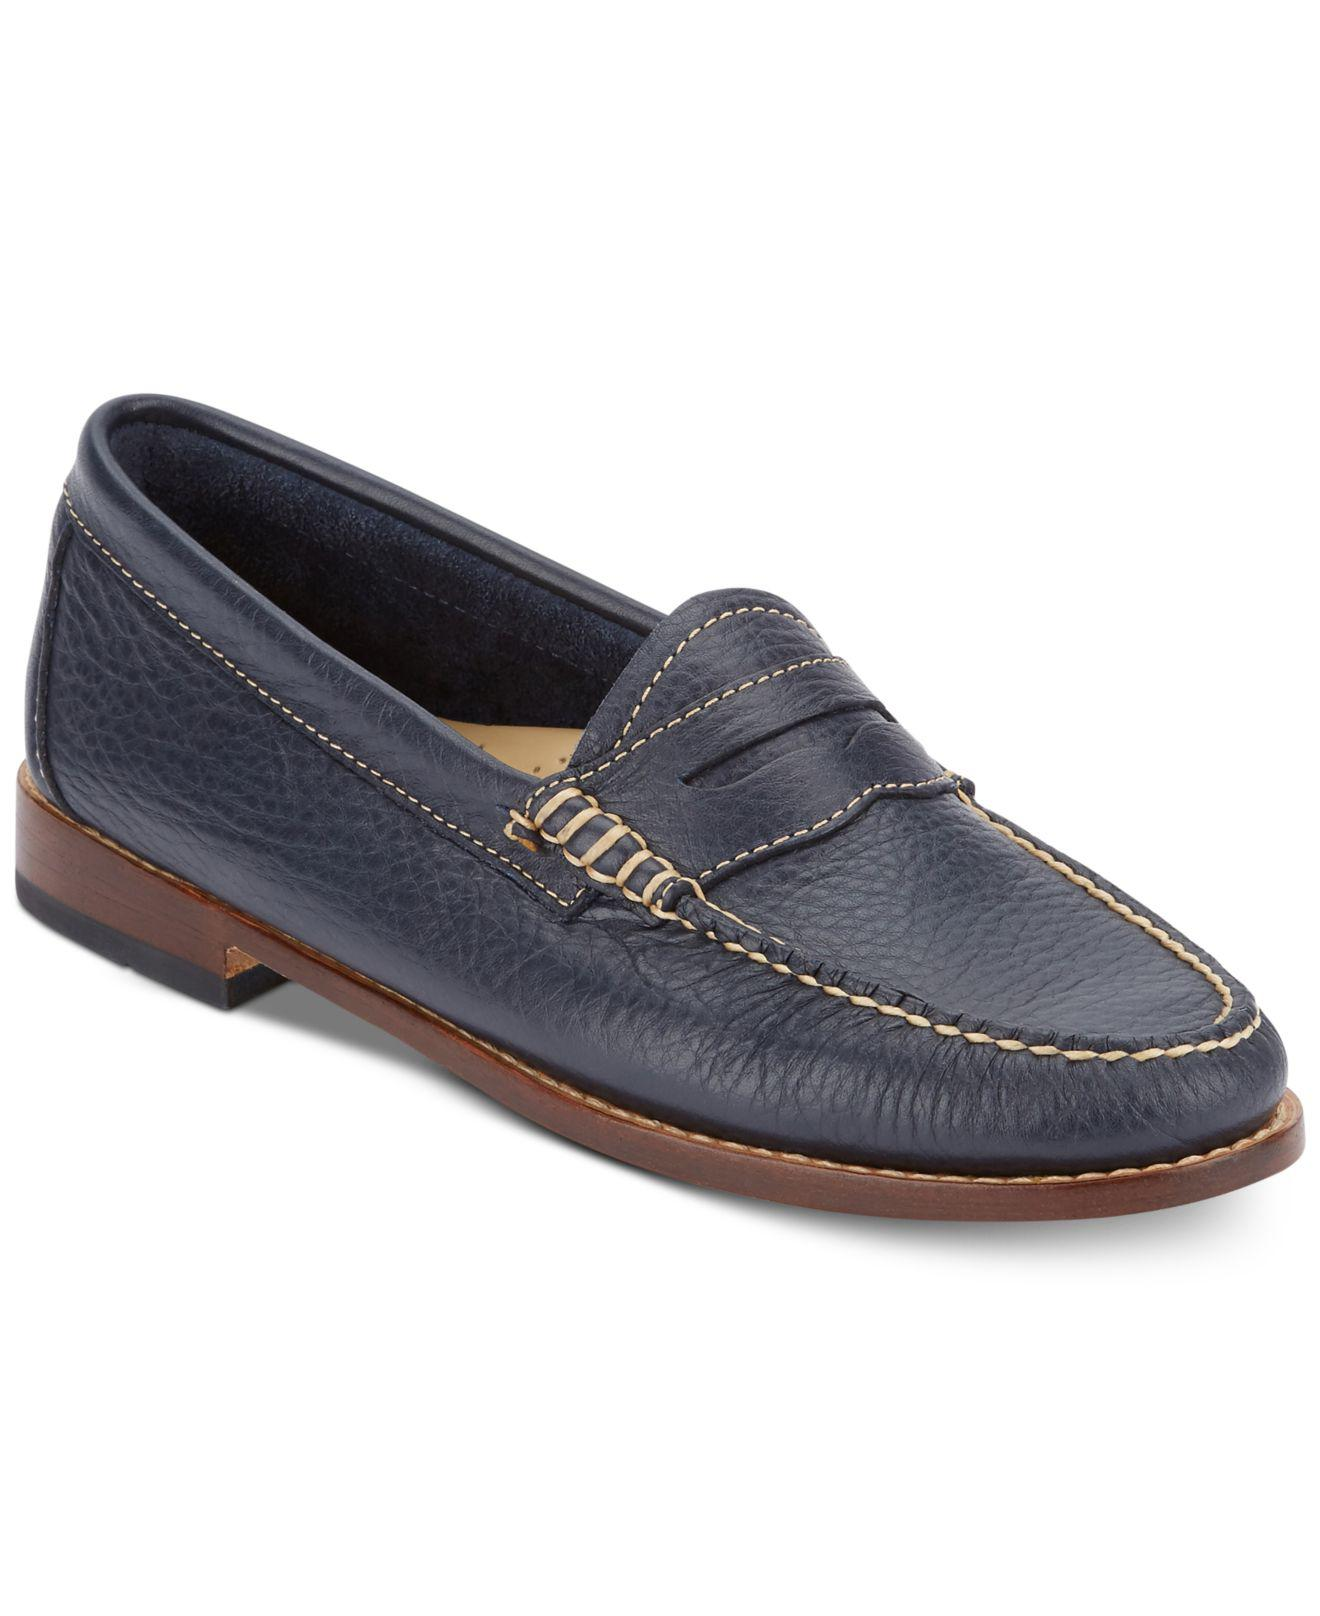 ca4886b6adc Lyst - G.H.BASS Women s Weejuns Whitney Penny Loafers in Blue